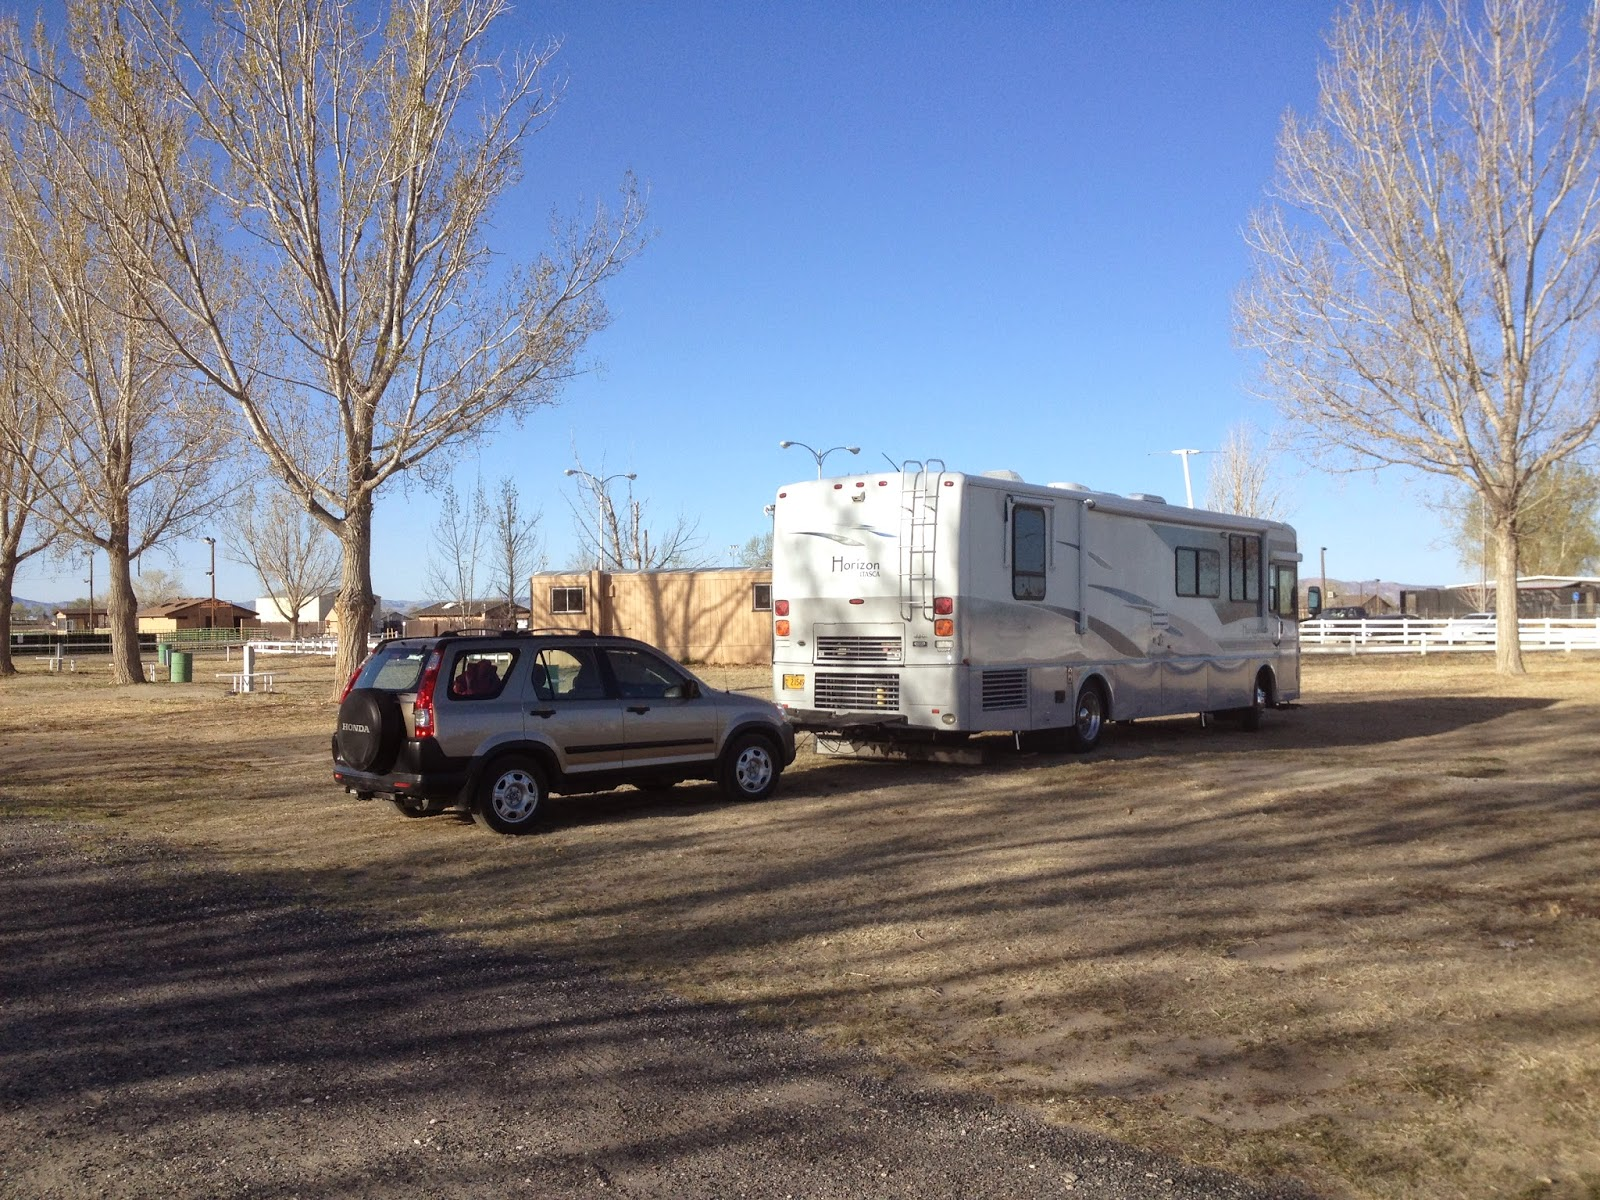 Motorhome parked at Churchill County Fairgrounds in Fallon NV